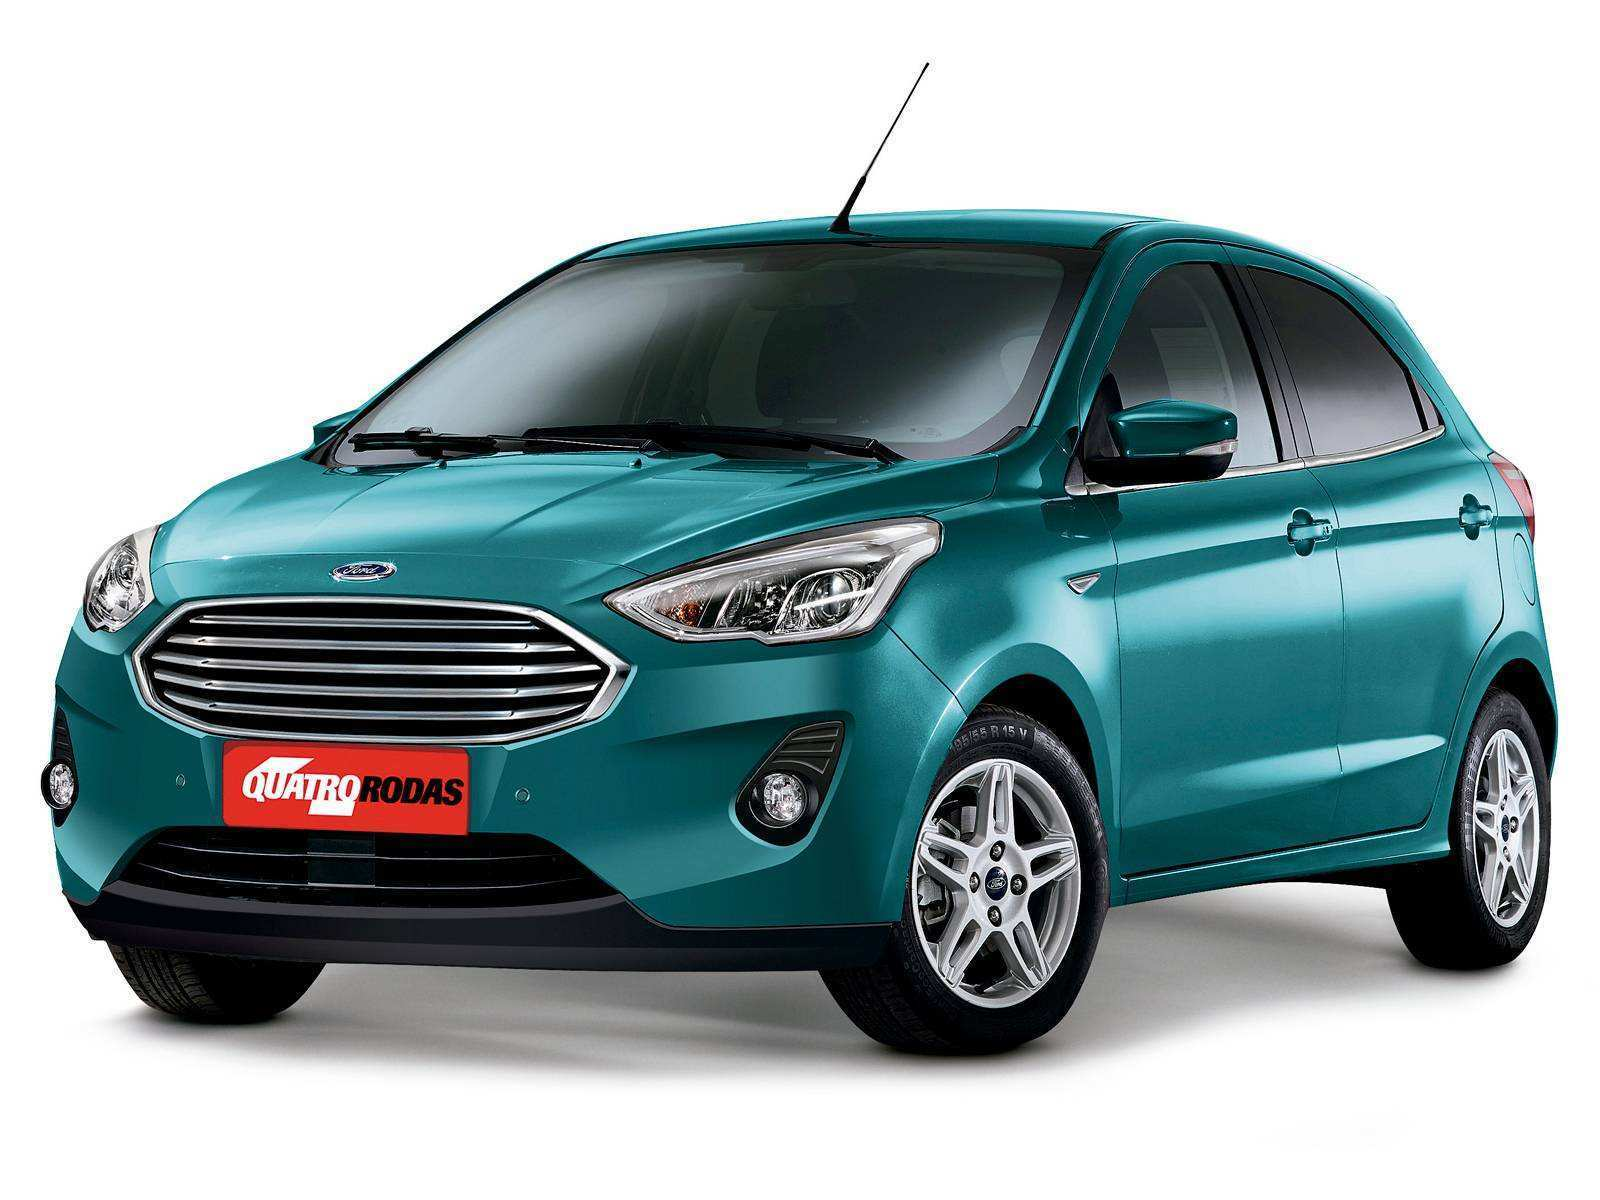 37 Concept of Ford Ka 2019 Facelift Performance and New Engine for Ford Ka 2019 Facelift